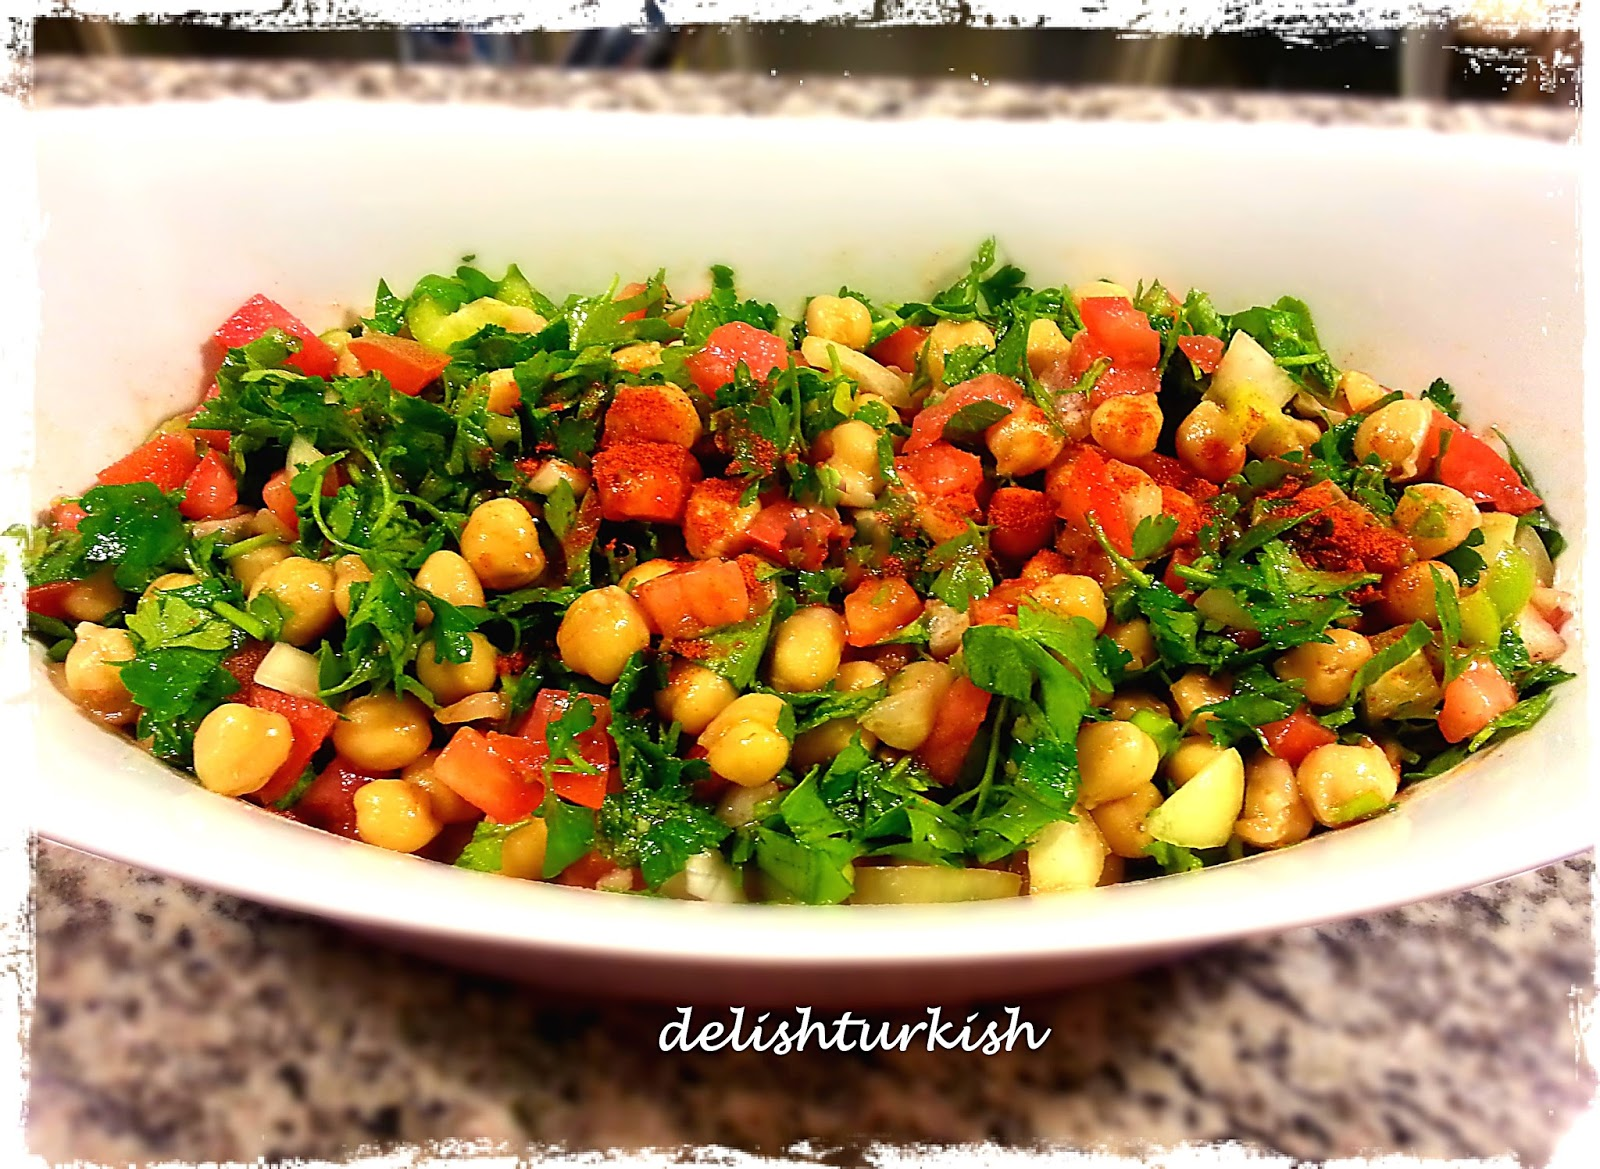 Delicious turkish food recipes chickpea salad nohut salatasi chickpea salad nohut salatasi forumfinder